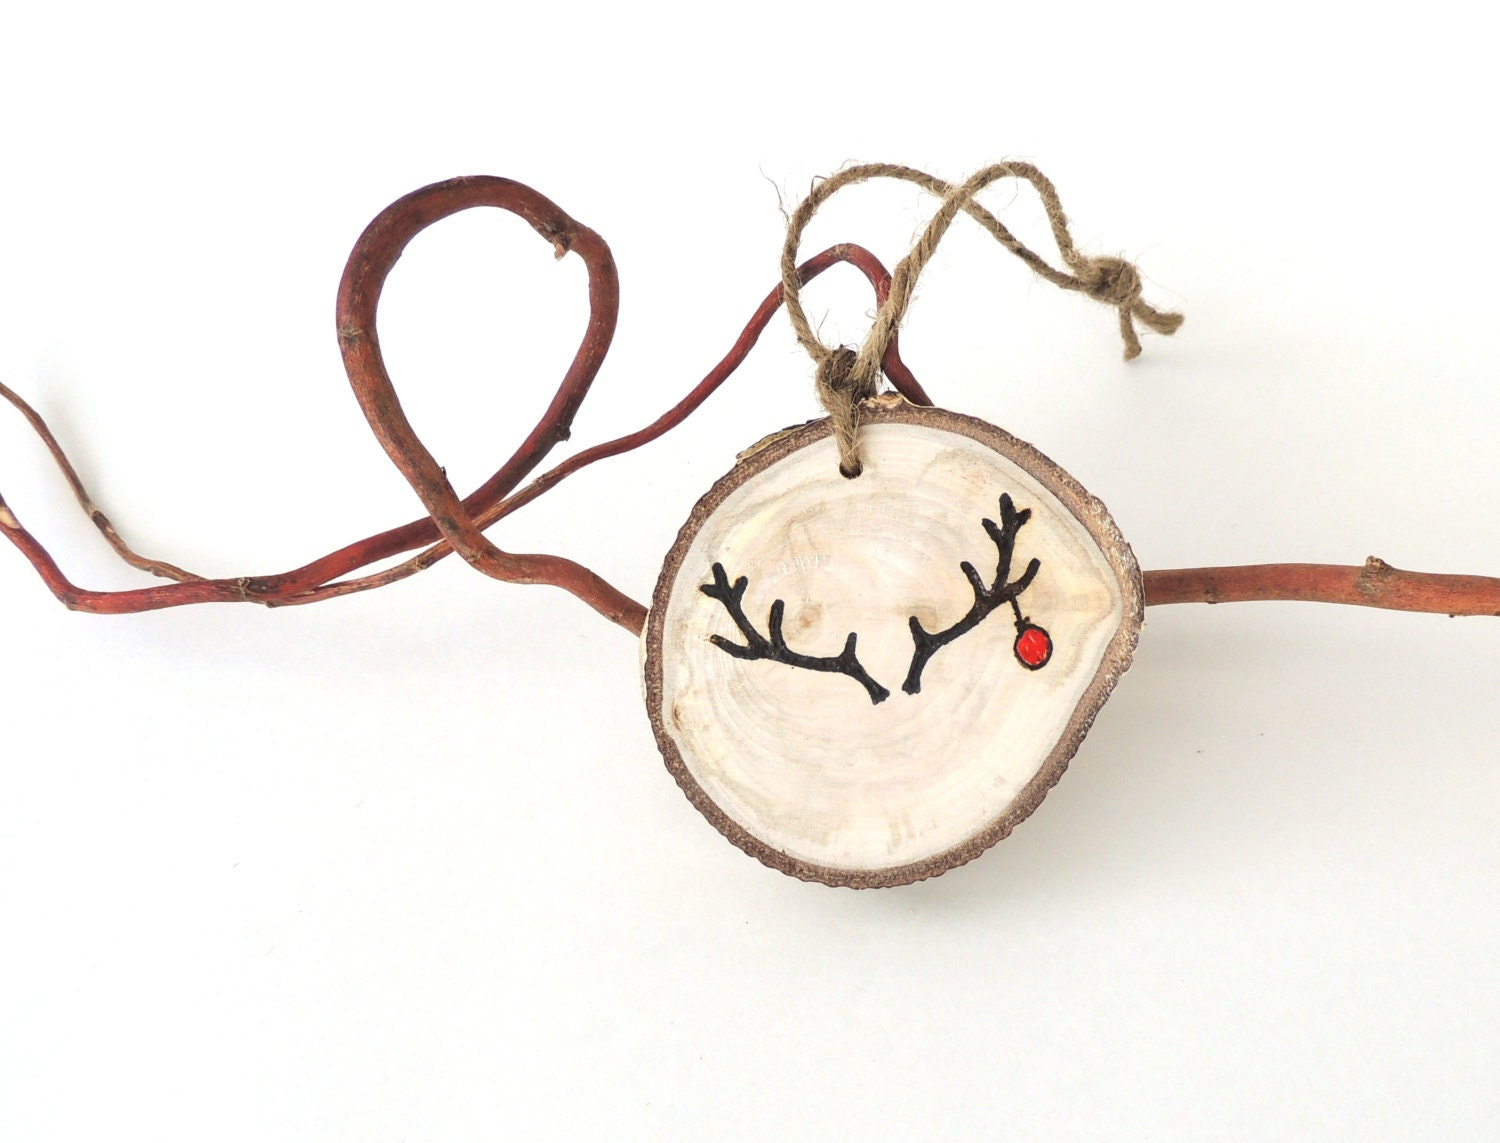 Rustic Christmas Ornament, Wood Reindeer Ornament,, Deck the Antlers, Tree Slice Charm,  Natural Christmas Ornament, Woodland - VaniTeaz